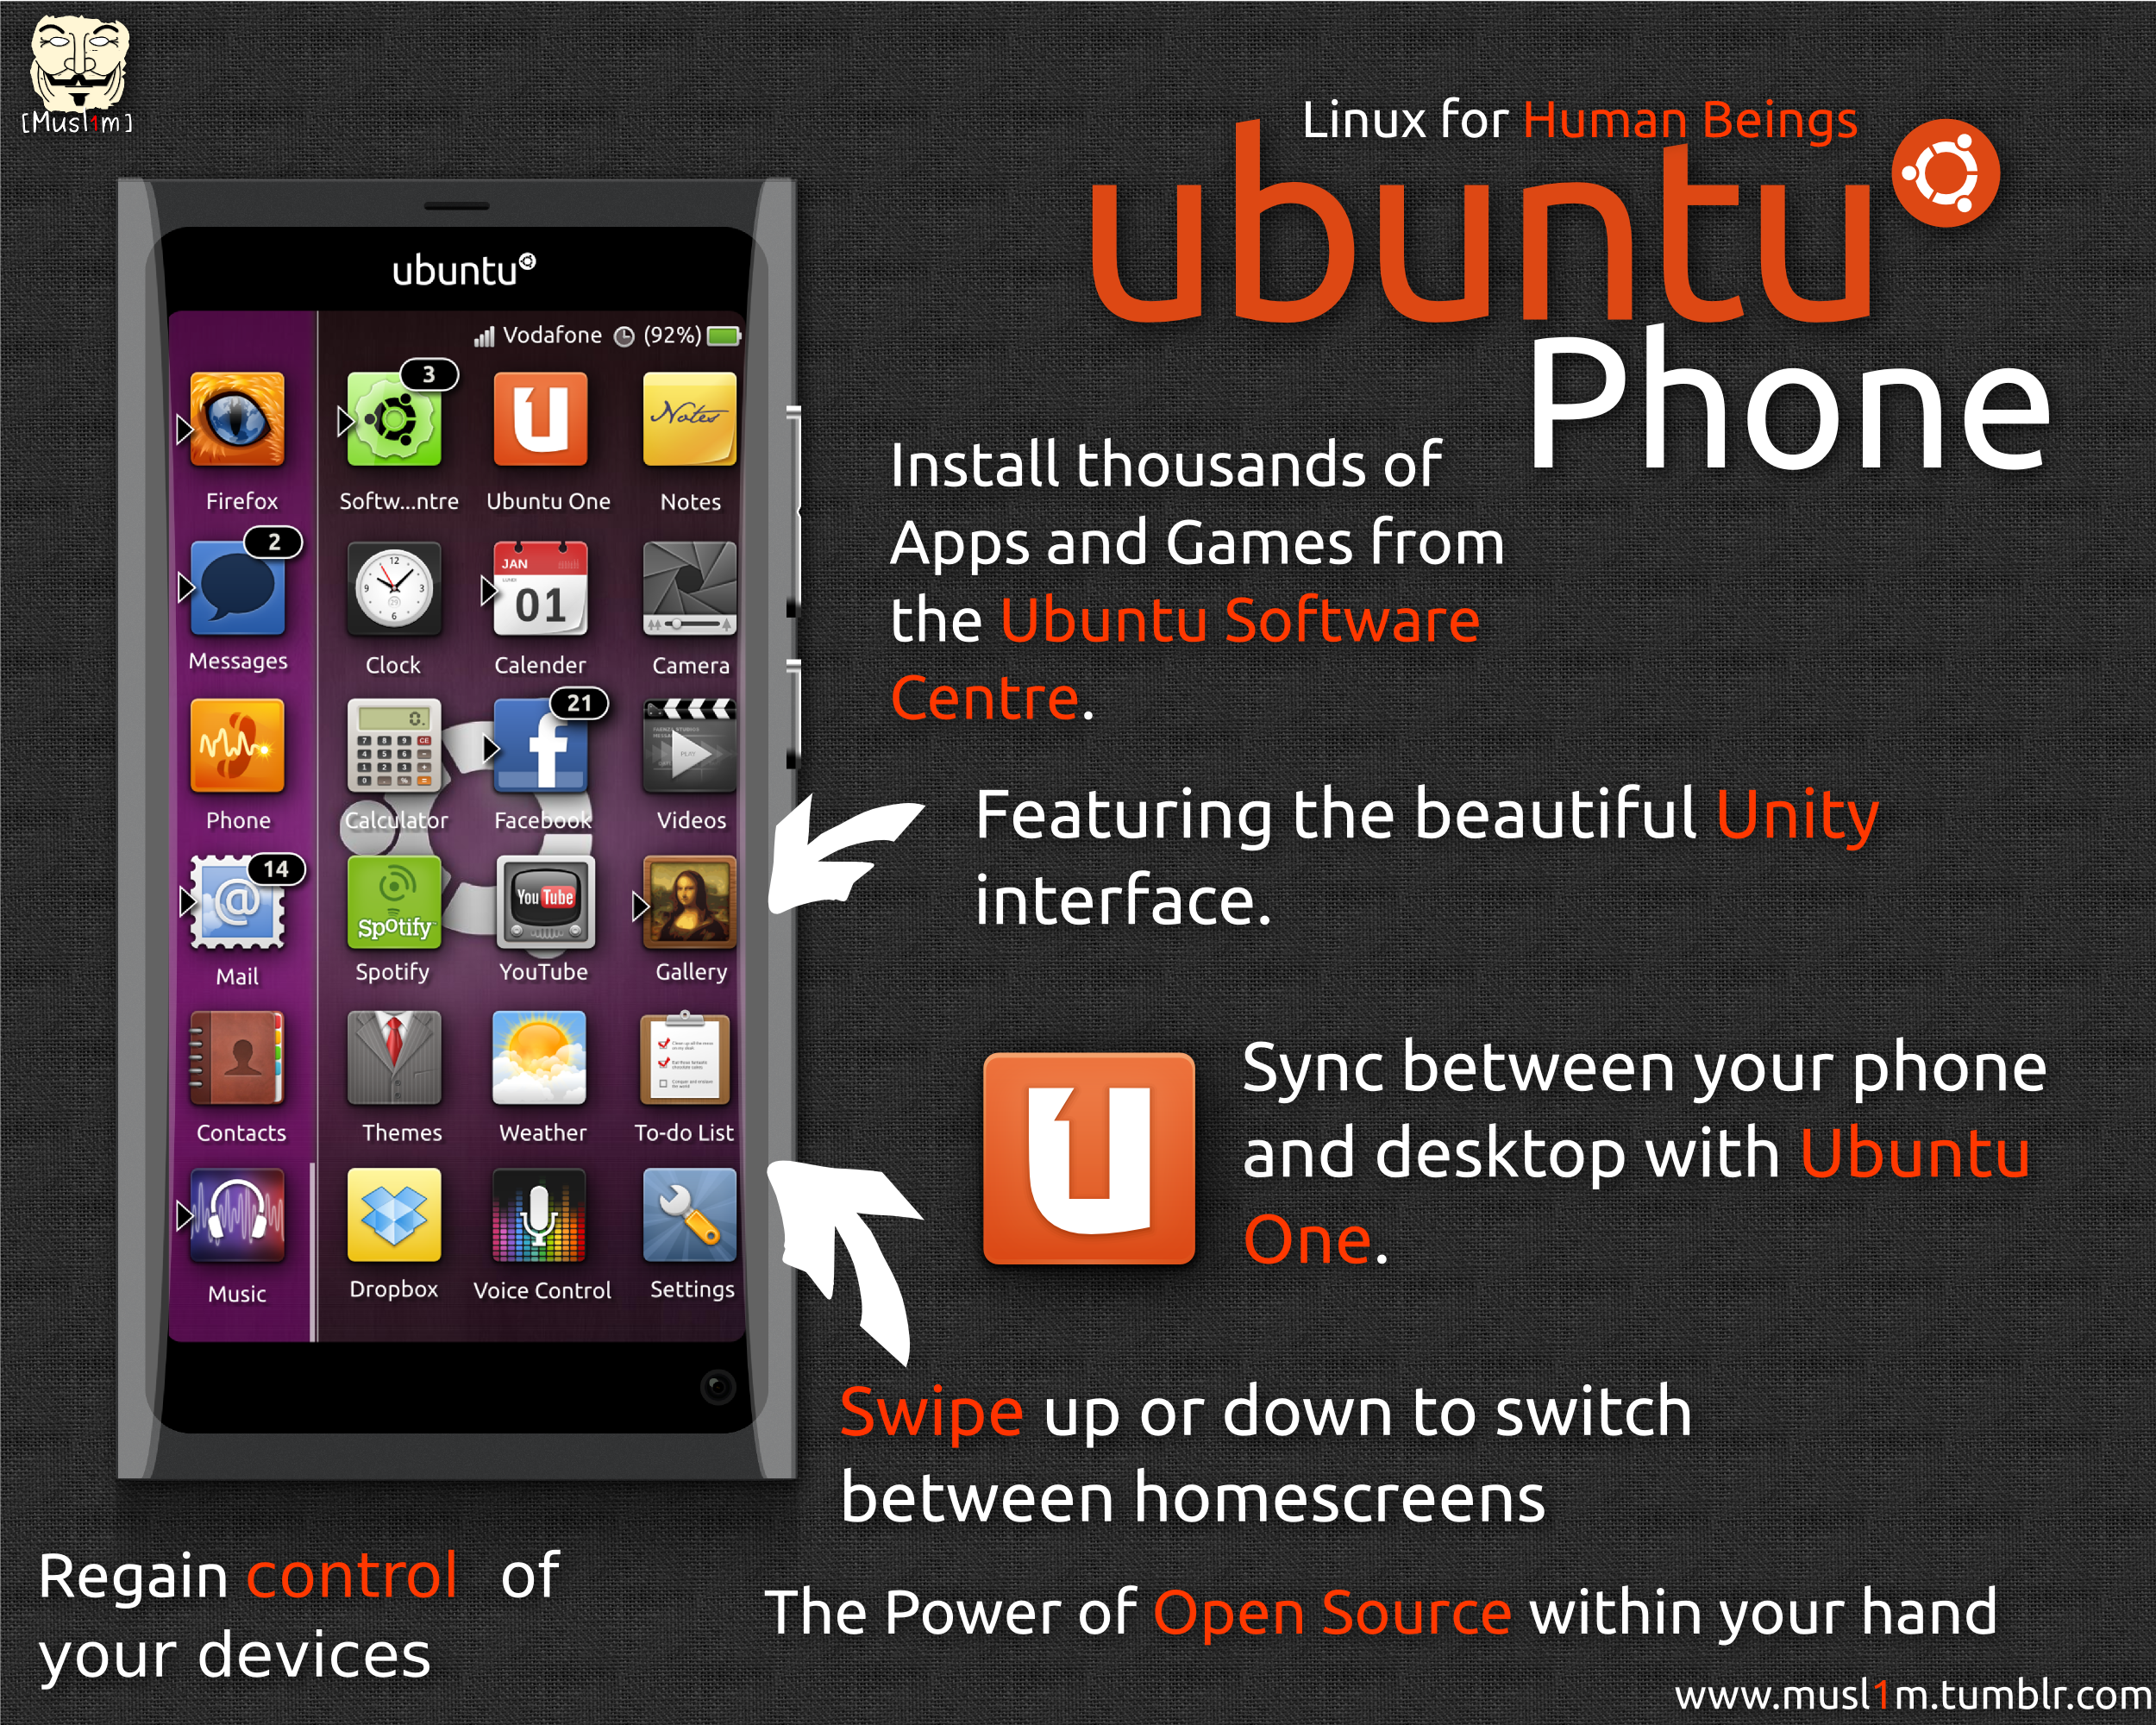 My Ubuntu Phone